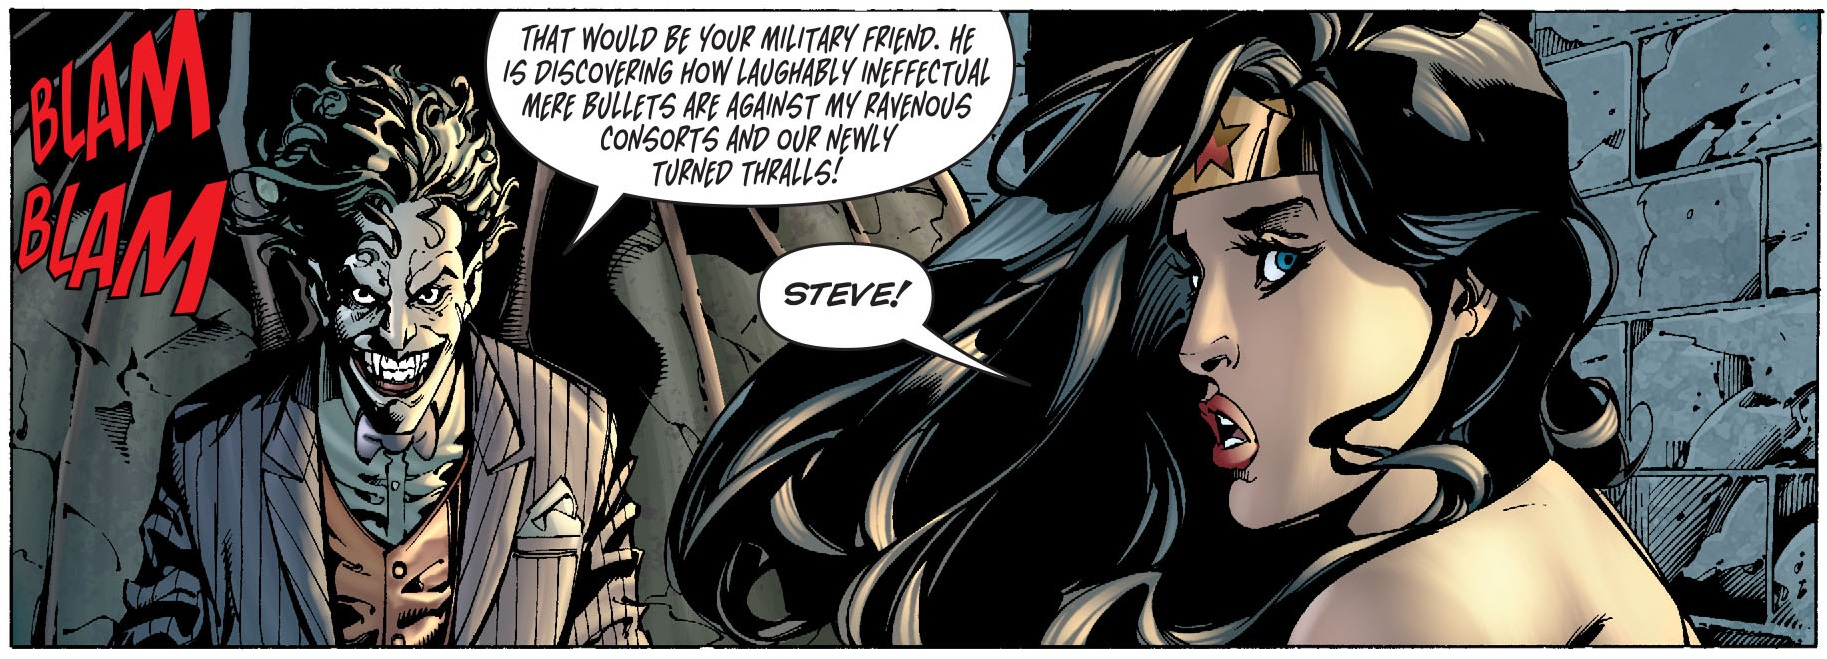 Convergence Wonder Woman 2 thumb 1